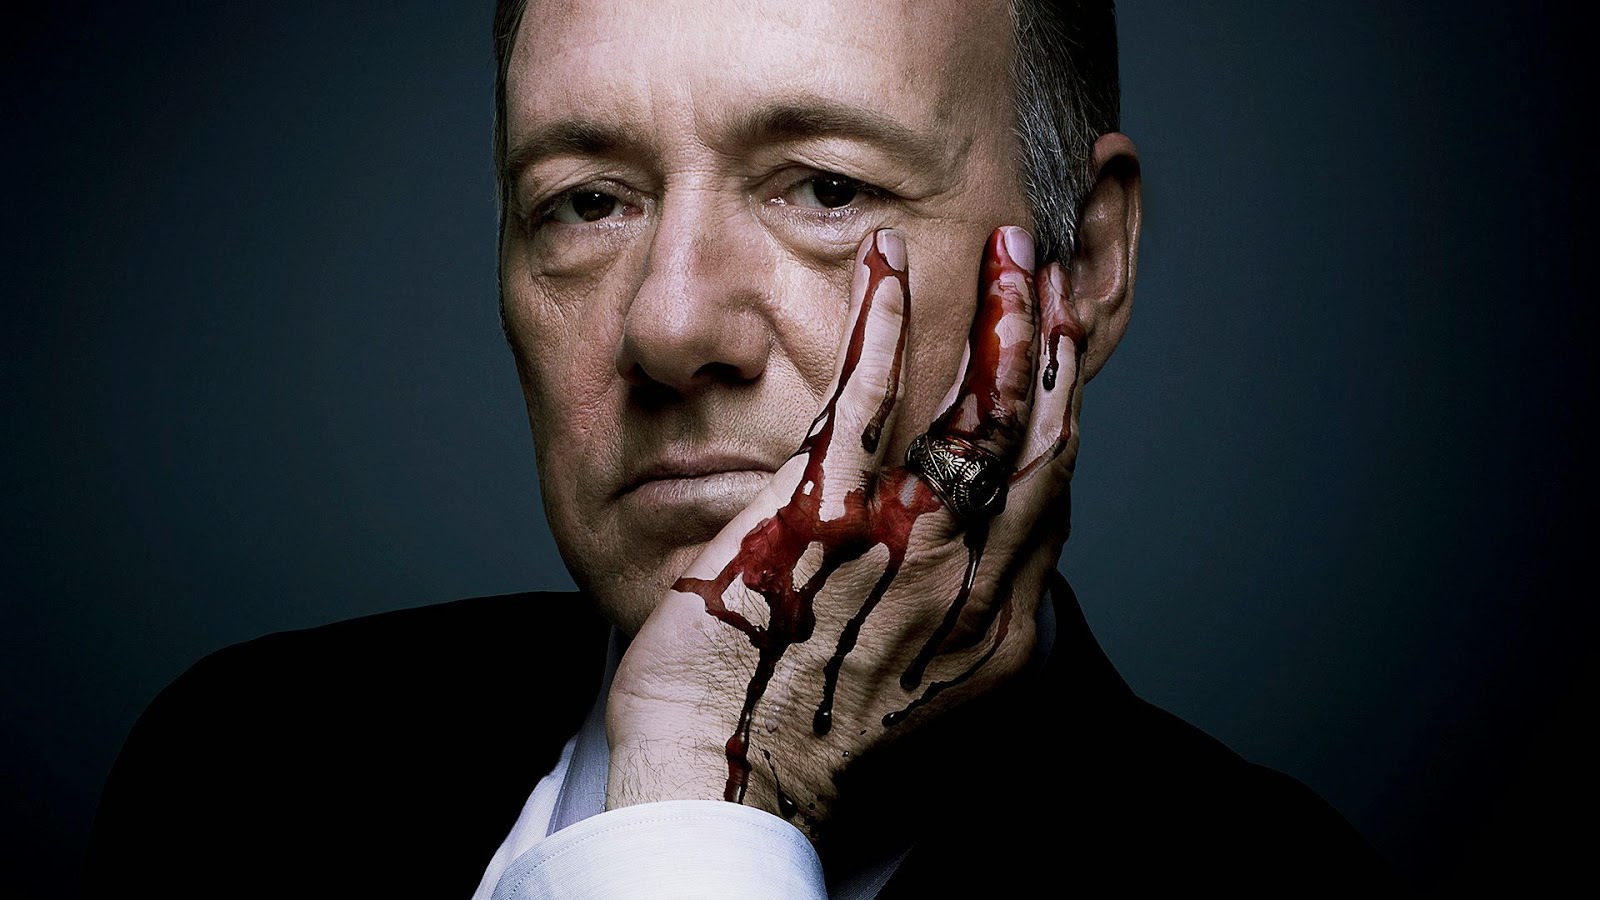 Kevin Spacey, bisexual, house of cards, tv, bisexuals, Frank Underwood